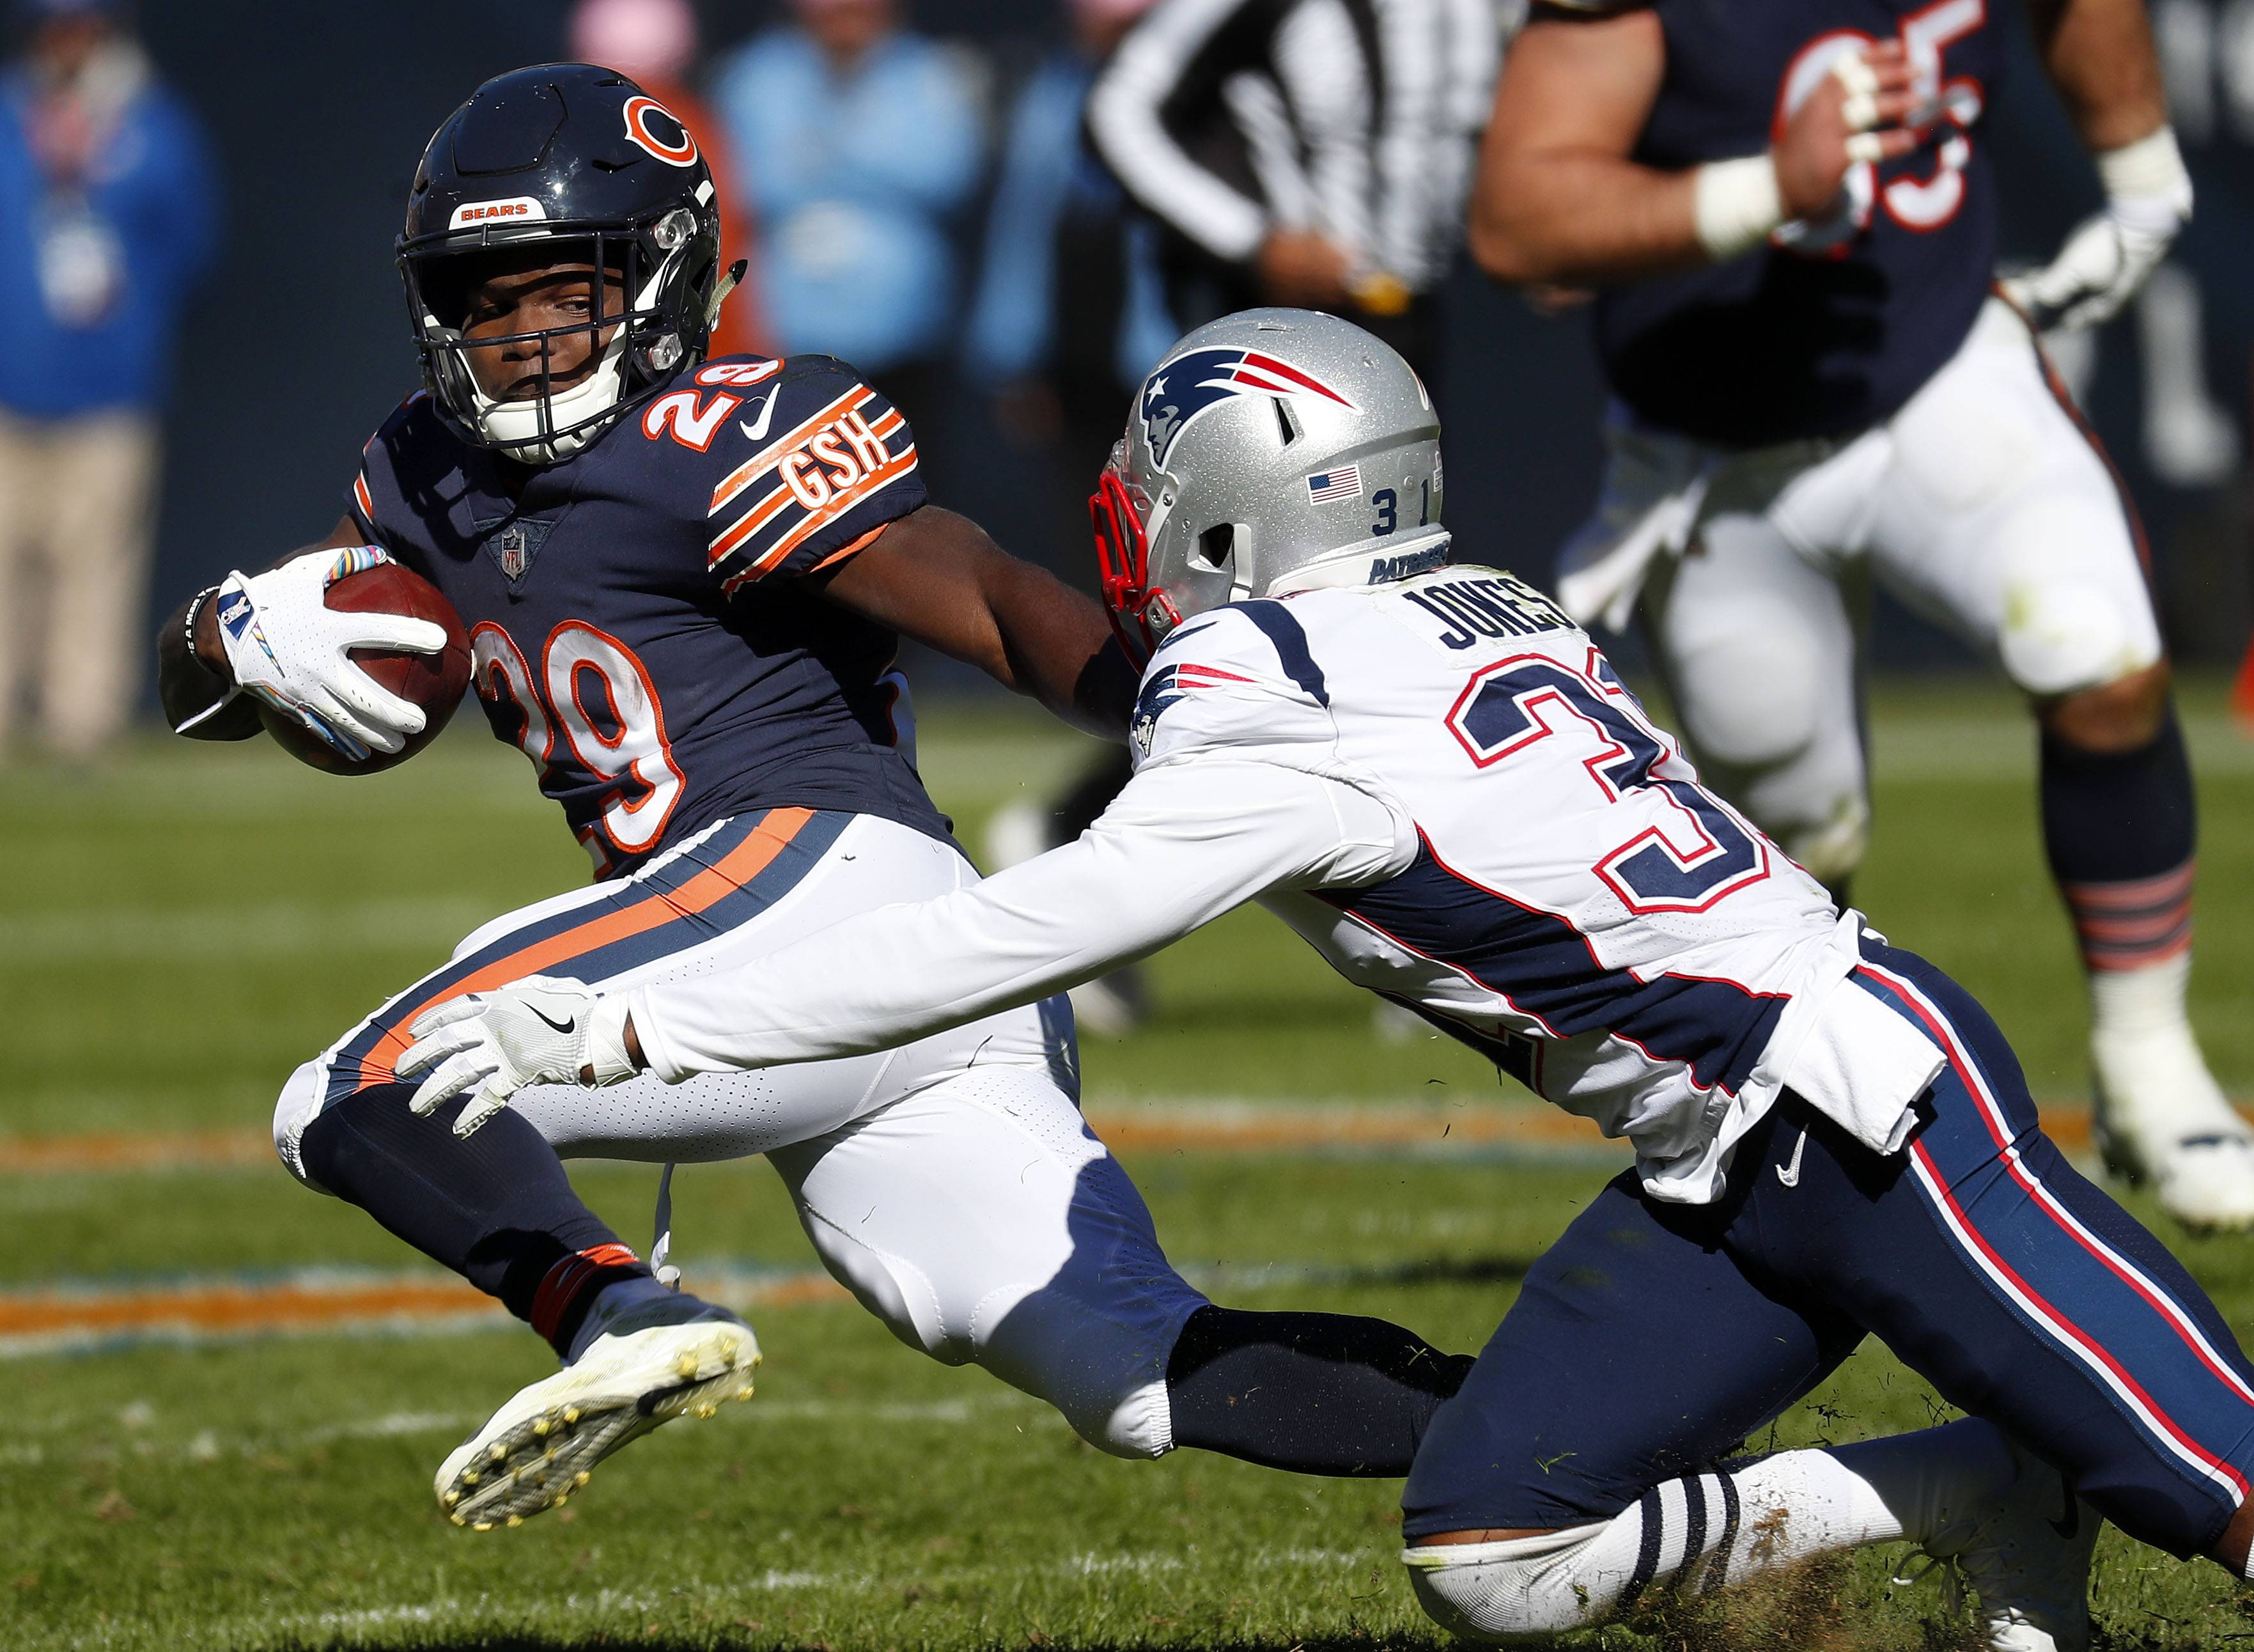 Chicago Bears running back Tarik Cohen tries to get around New England Patriots defensive back Jonathan Jones on Sunday at Soldier Field. Cohen just 14 yards on 6 attempts.